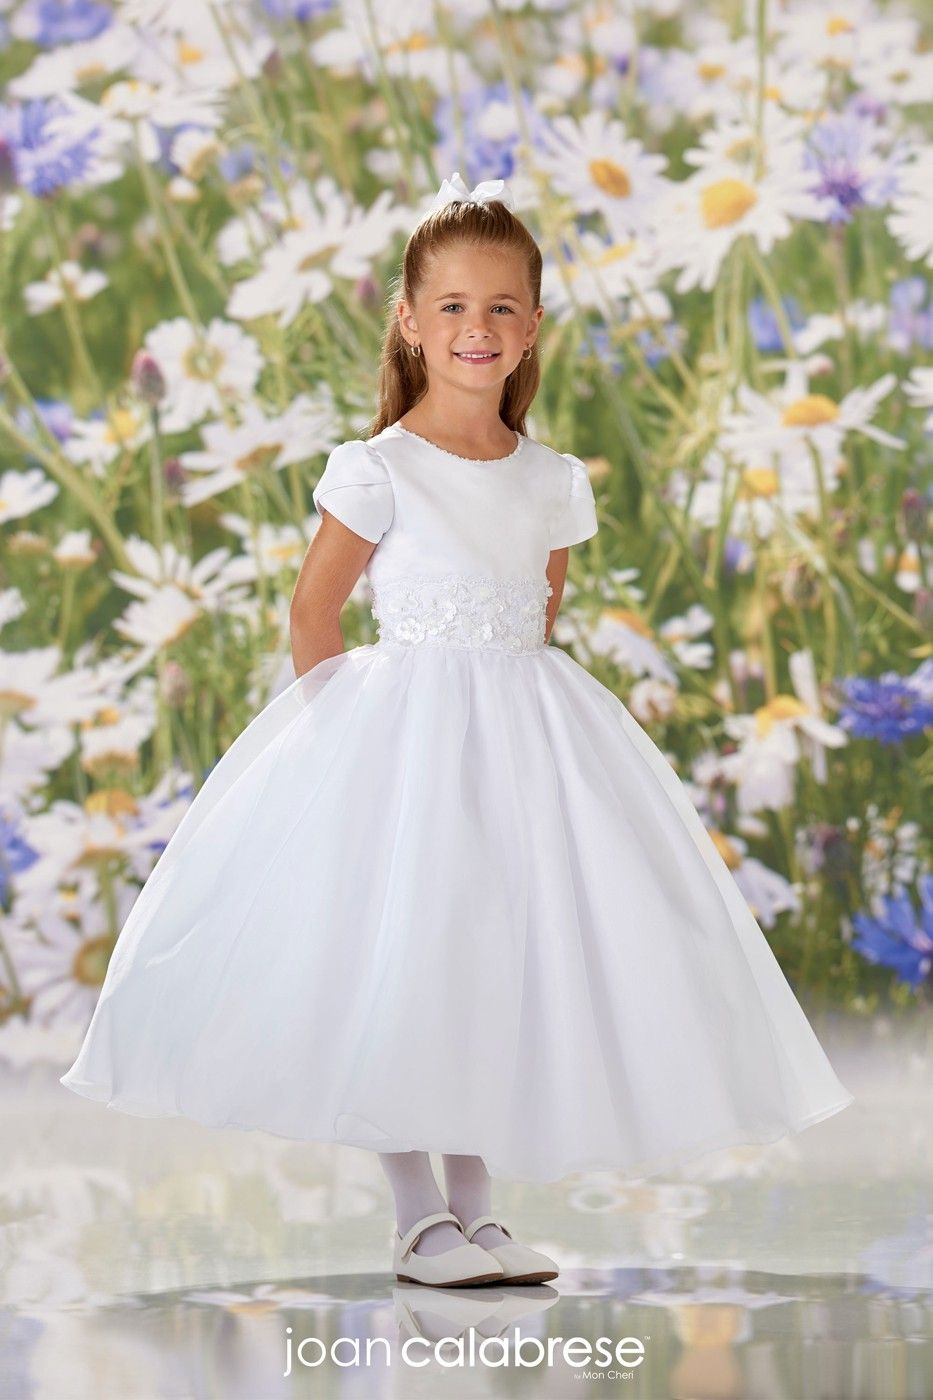 Joan Calabrese 120342 Tulip Sleeve First Communion Dress In 2021 First Communion Dresses Communion Dresses Flower Girl Dresses [ 1400 x 933 Pixel ]